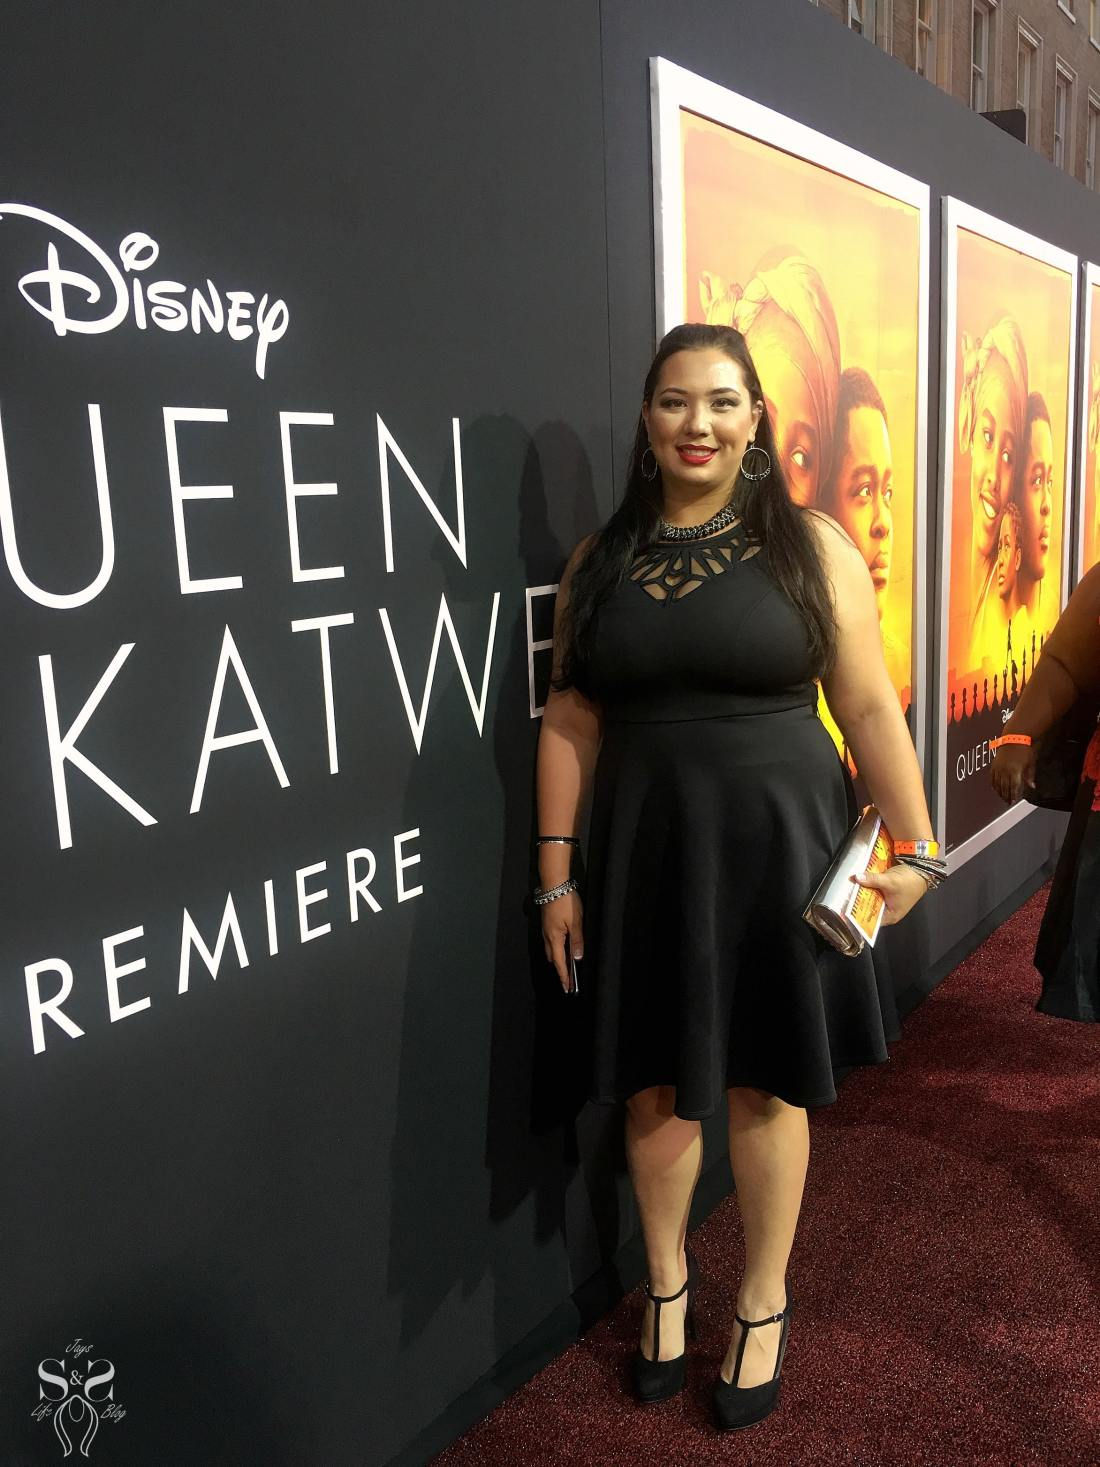 queen-of-katwe-walking-the-red-carpet-expierence-5